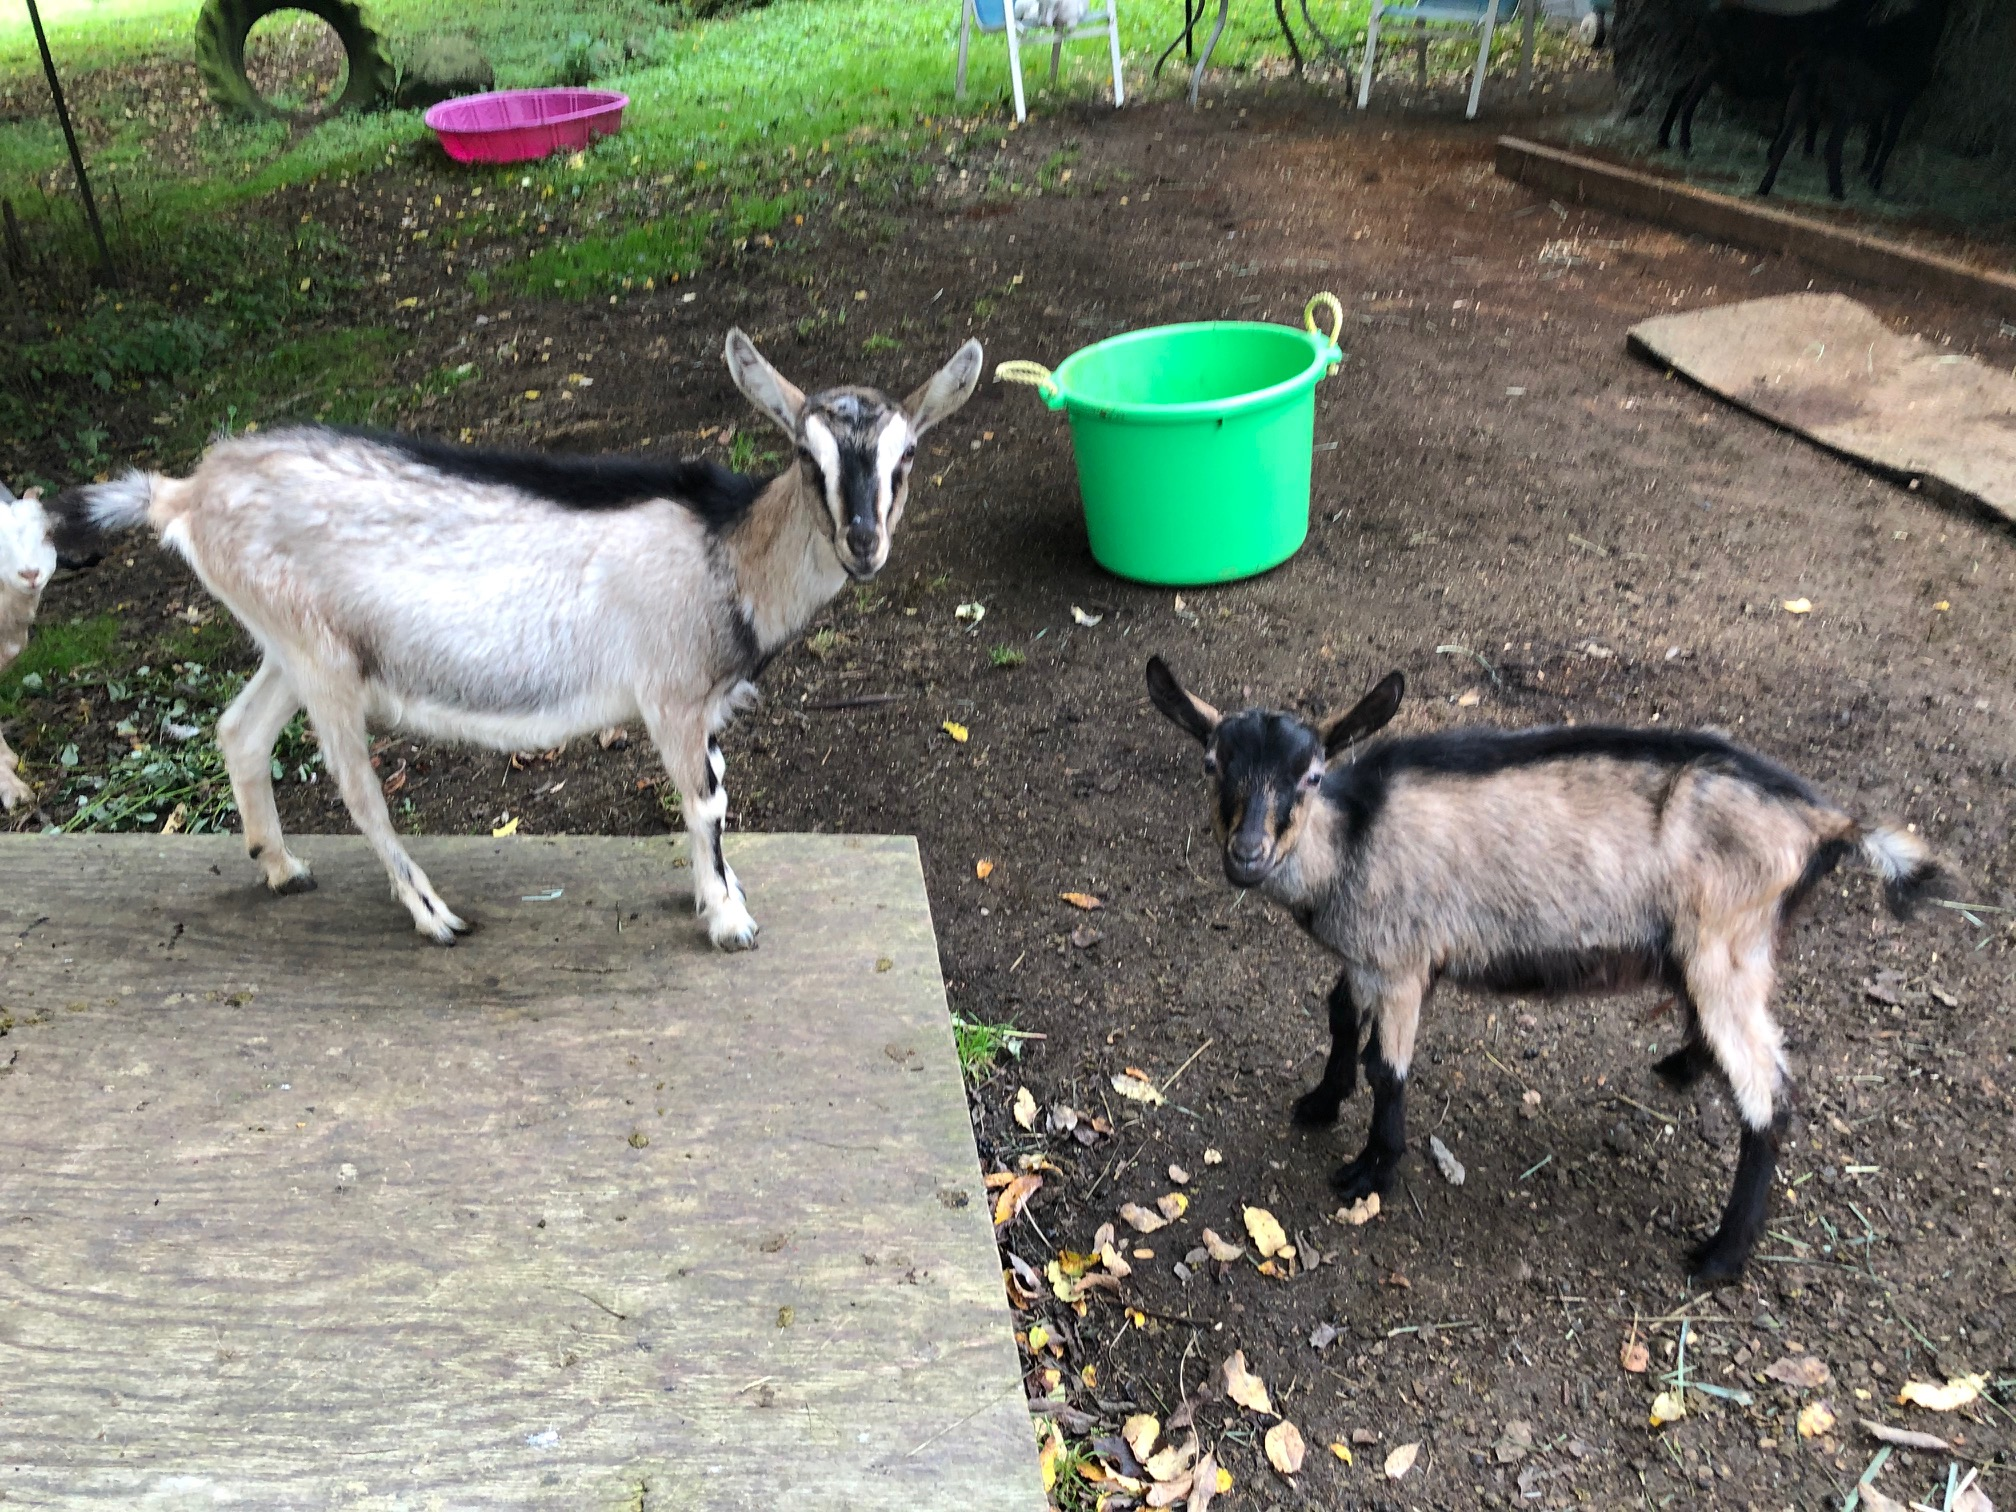 There is a lot of misinformation when it comes to goats. They are smart, sociable and can bond with humans. (Image: Seattle Refined)